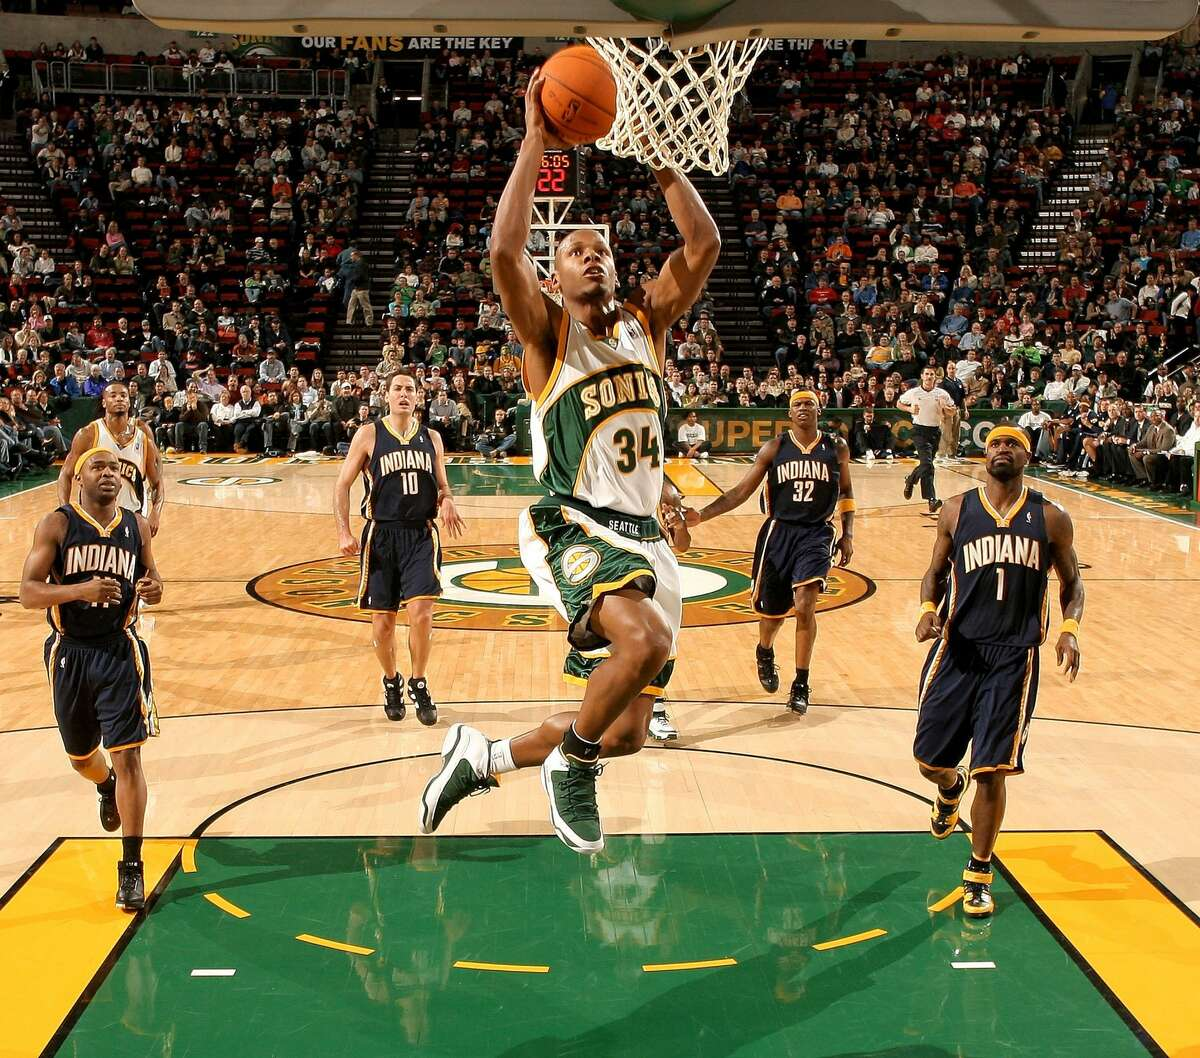 SEATTLE - DECEMBER 01: Ray Allen #34 of the Seattle SuperSonics shoots against the Indiana Pacers on December 01, 2006 at Key Arena in Seattle, Washington. Photo by Otto Greule Jr/Getty Images)